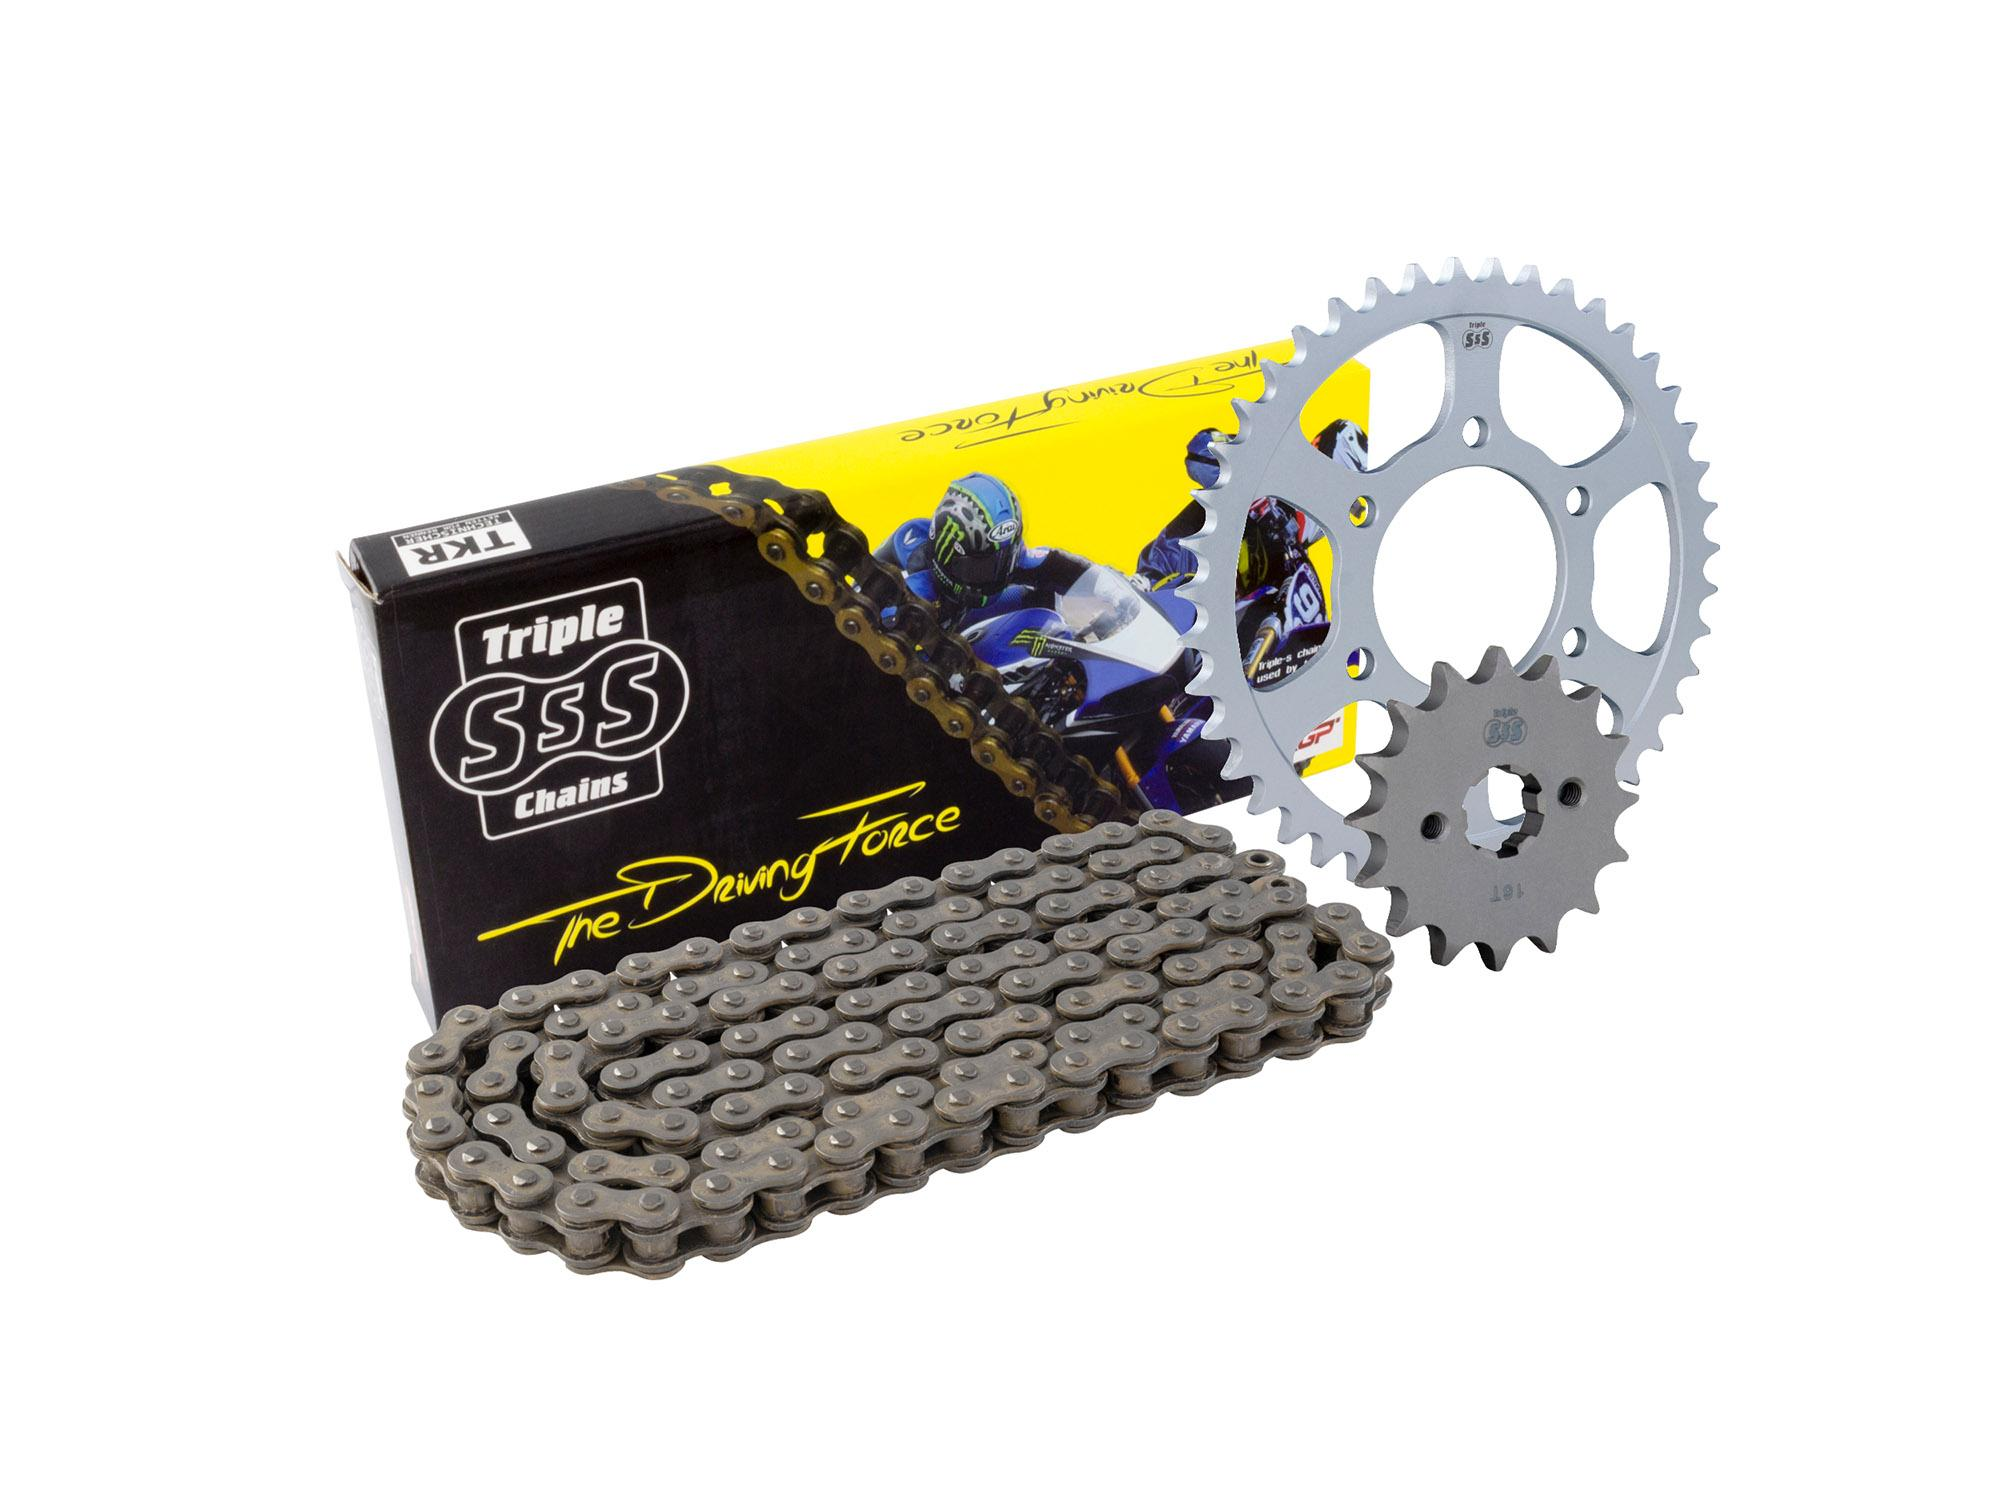 Suzuki DR-Z400S K1-L0 00-10 Chain & Sprocket Kit: 15T Front, 44T Rear, HD O-Ring Black Chain 520H 112 Link